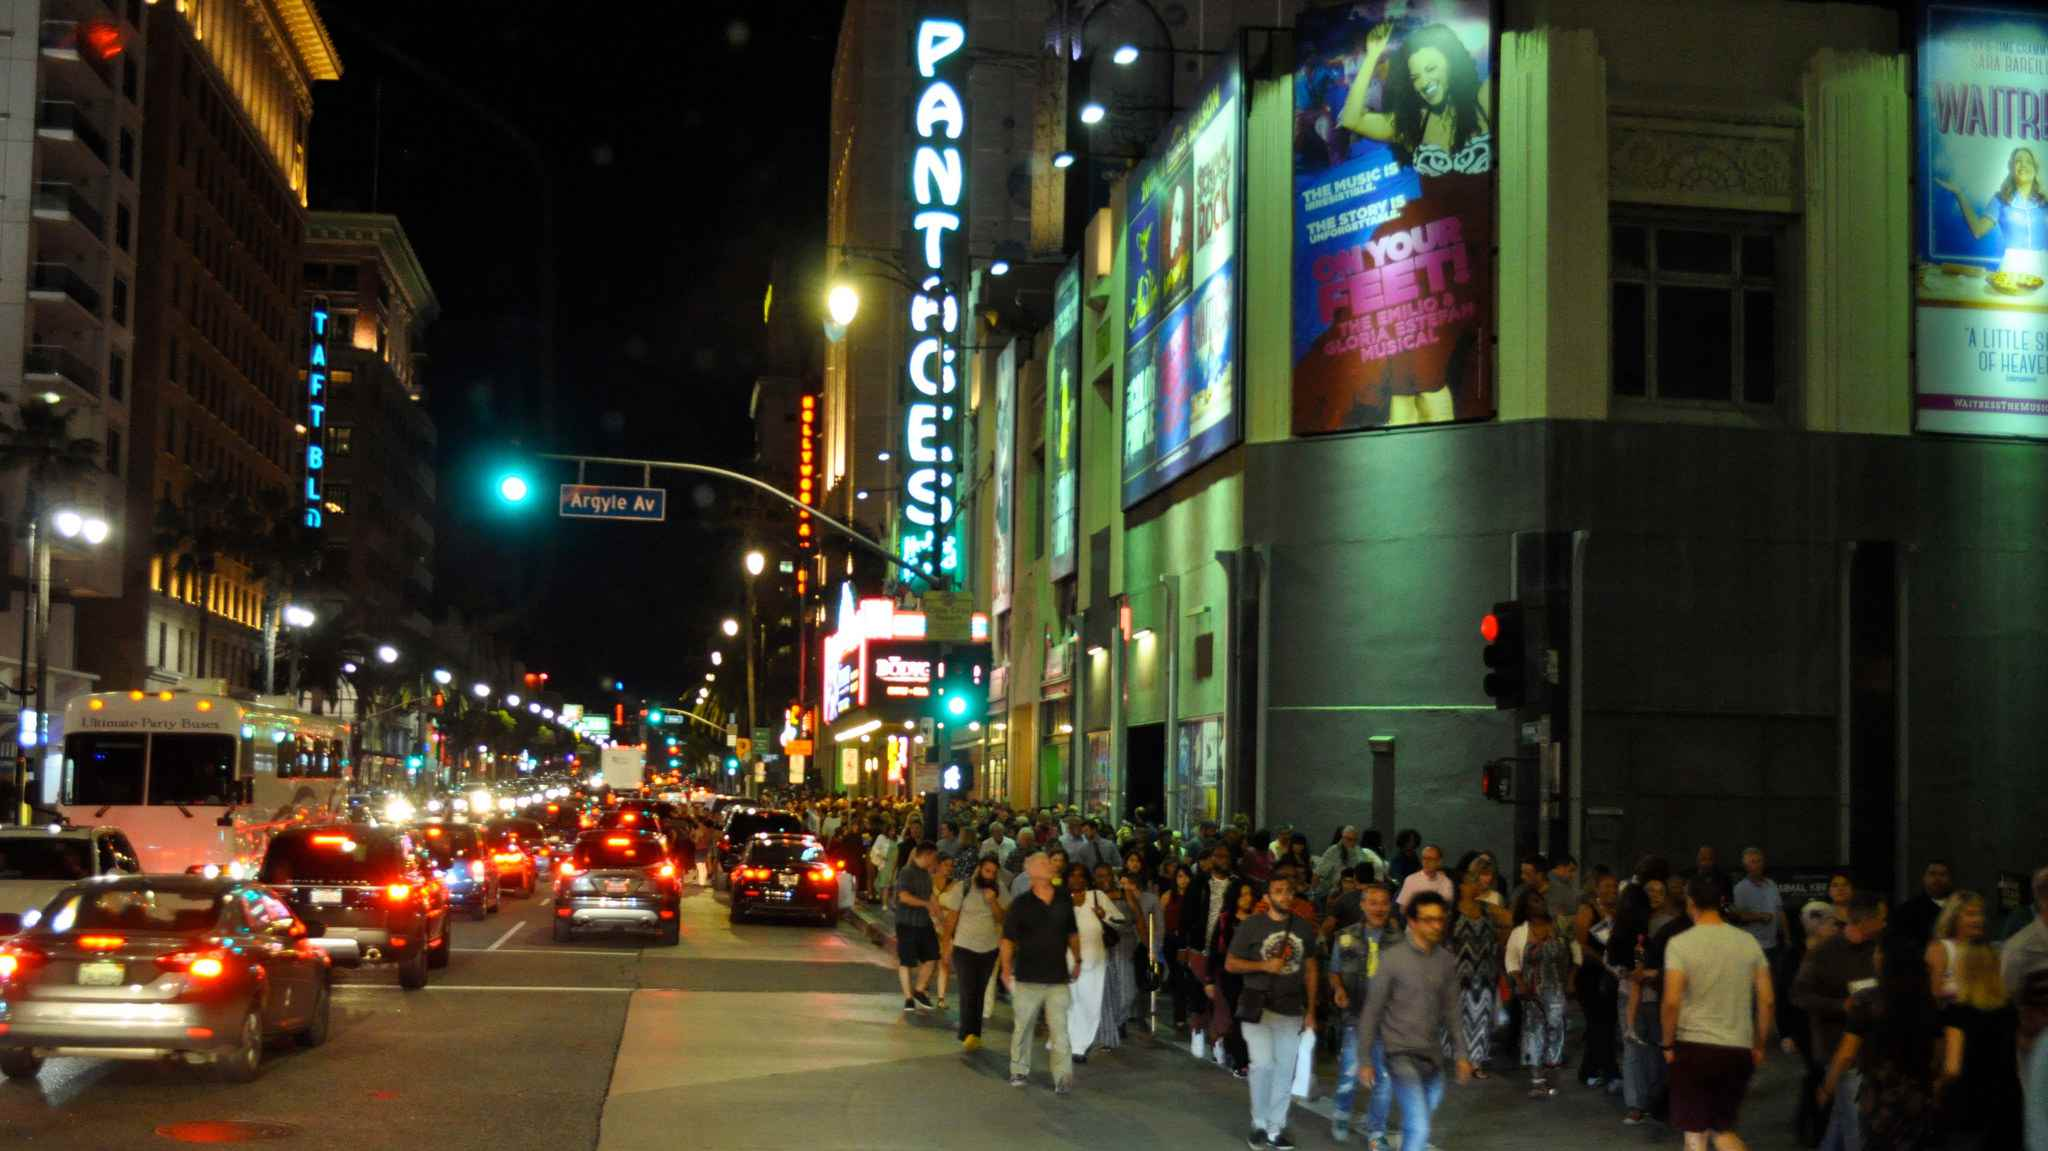 Pantages Theatre, Hollywood, California